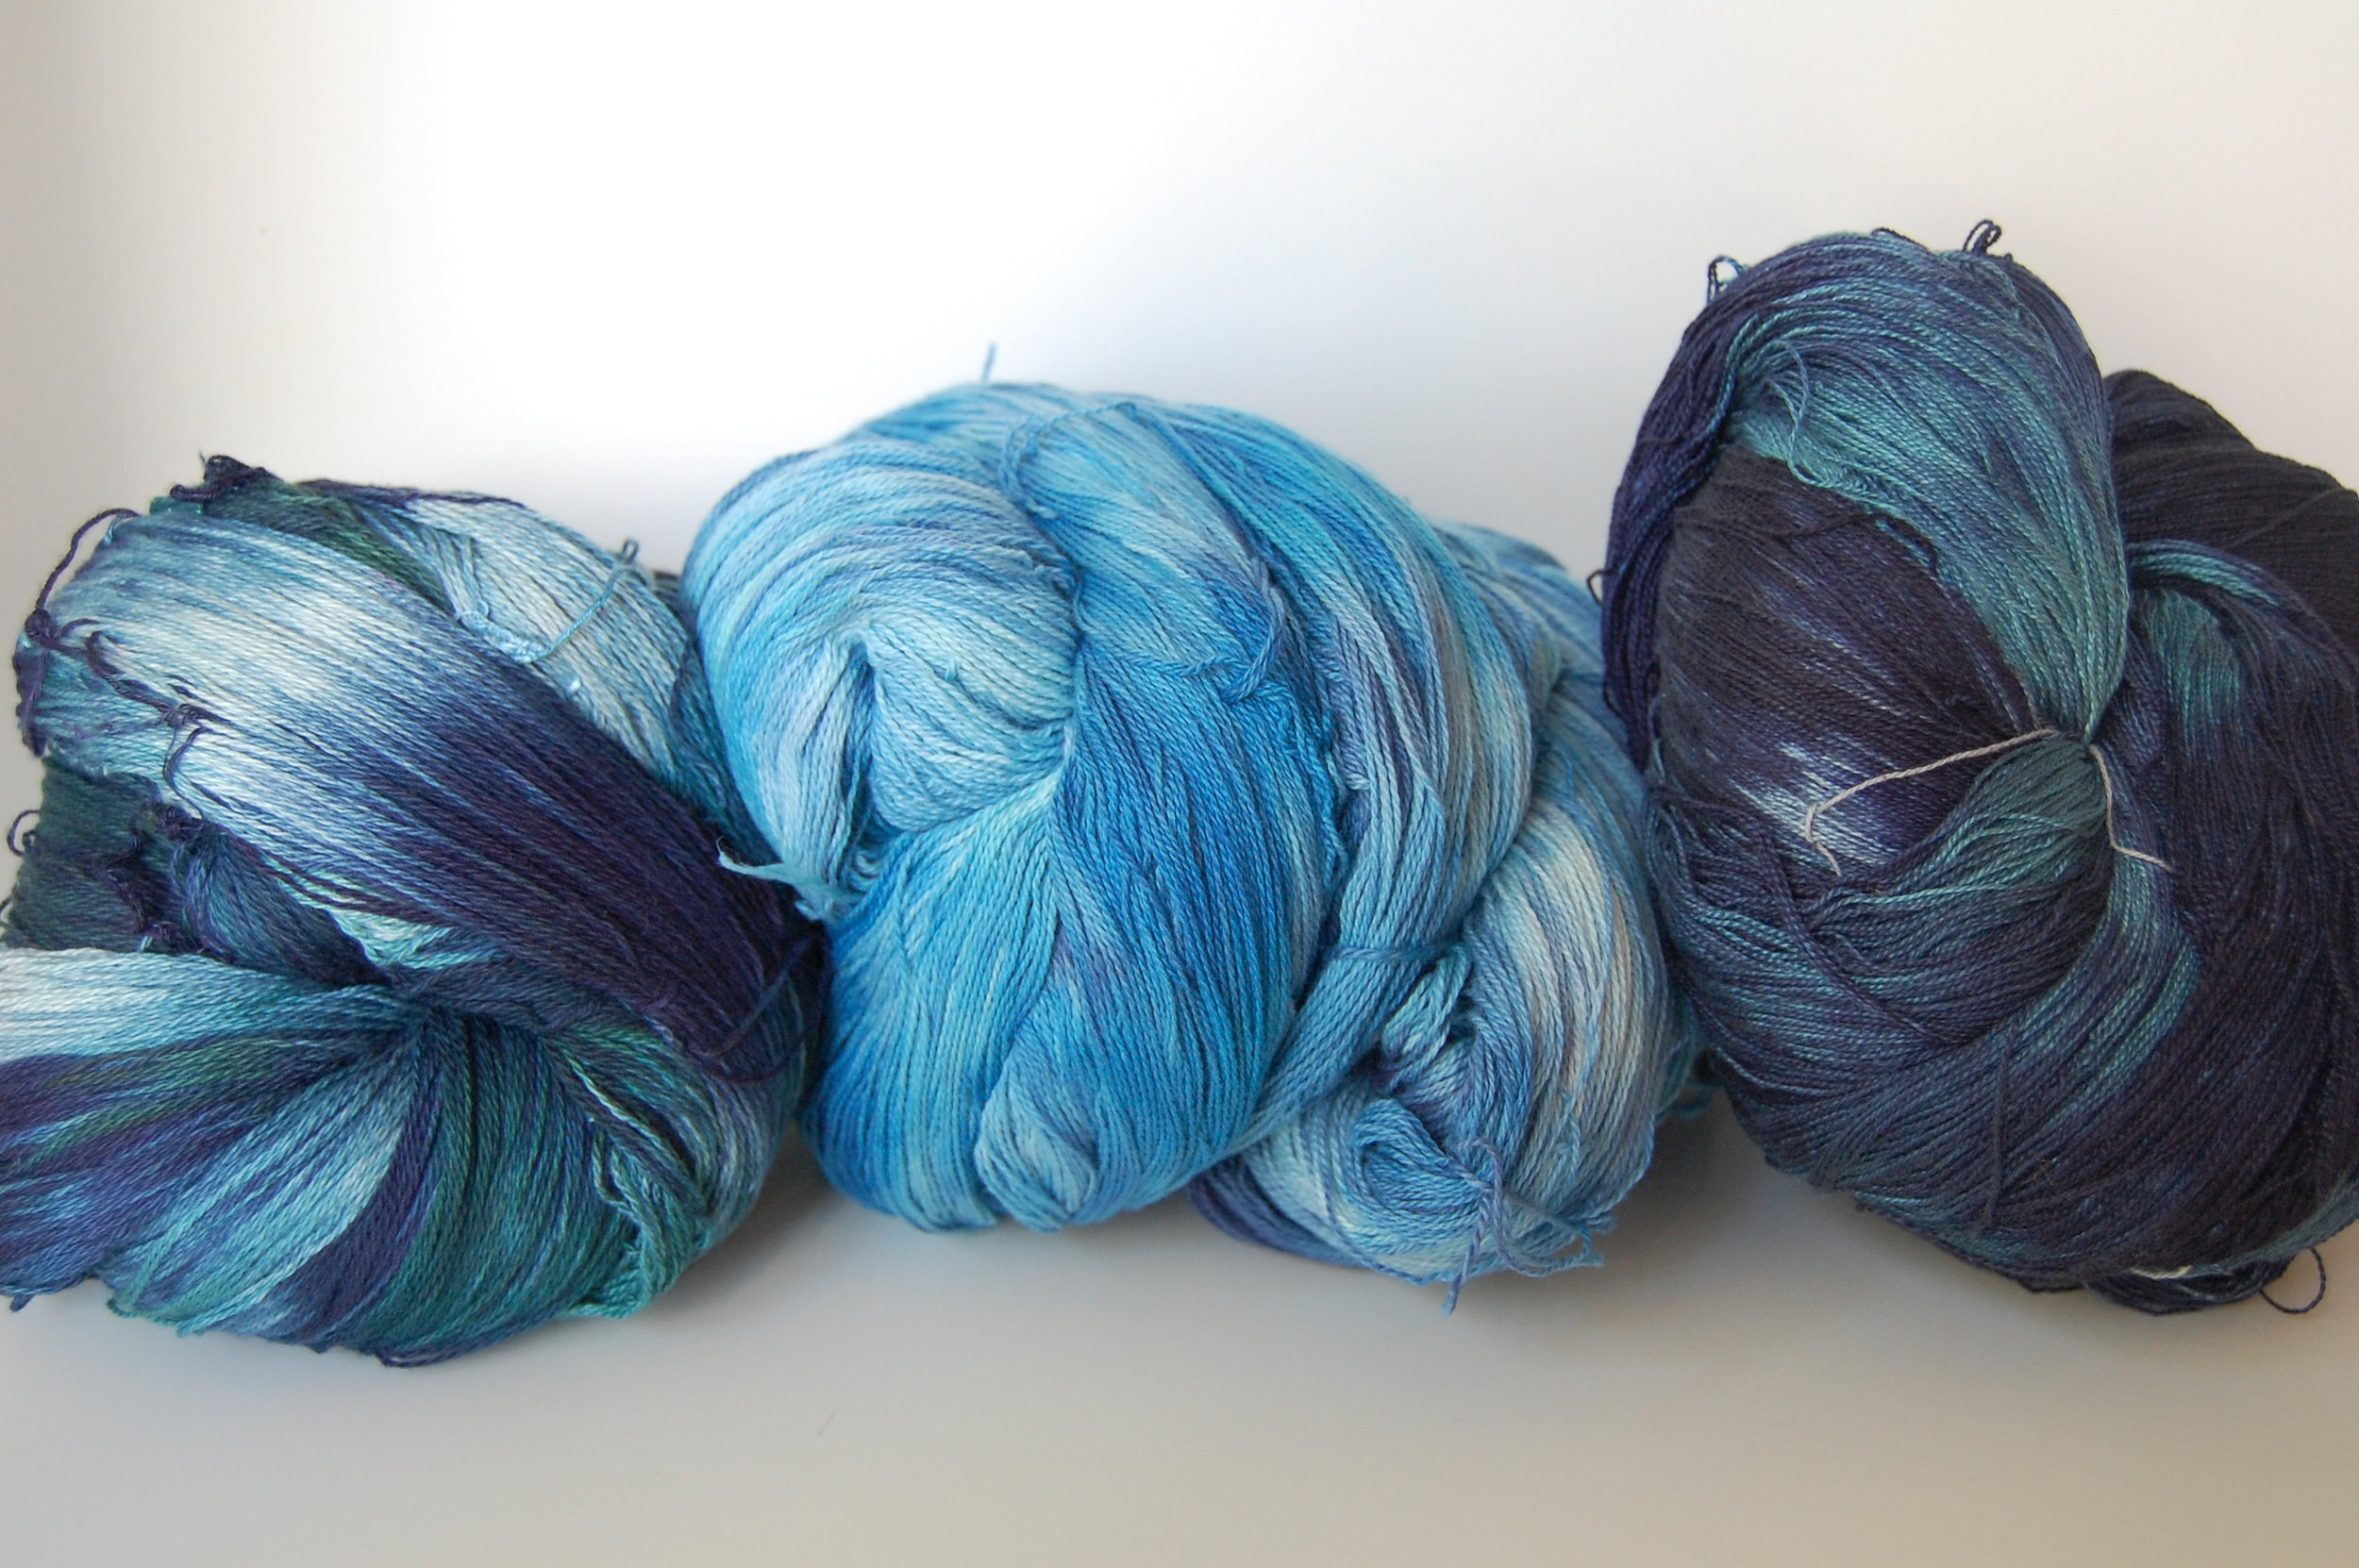 three hand-dyed wefts. at left is Organic pima cotton and is an early attempt at smoothly variegated color. center is the same technique after some more practice. at right is an acid-dyed silk weft.